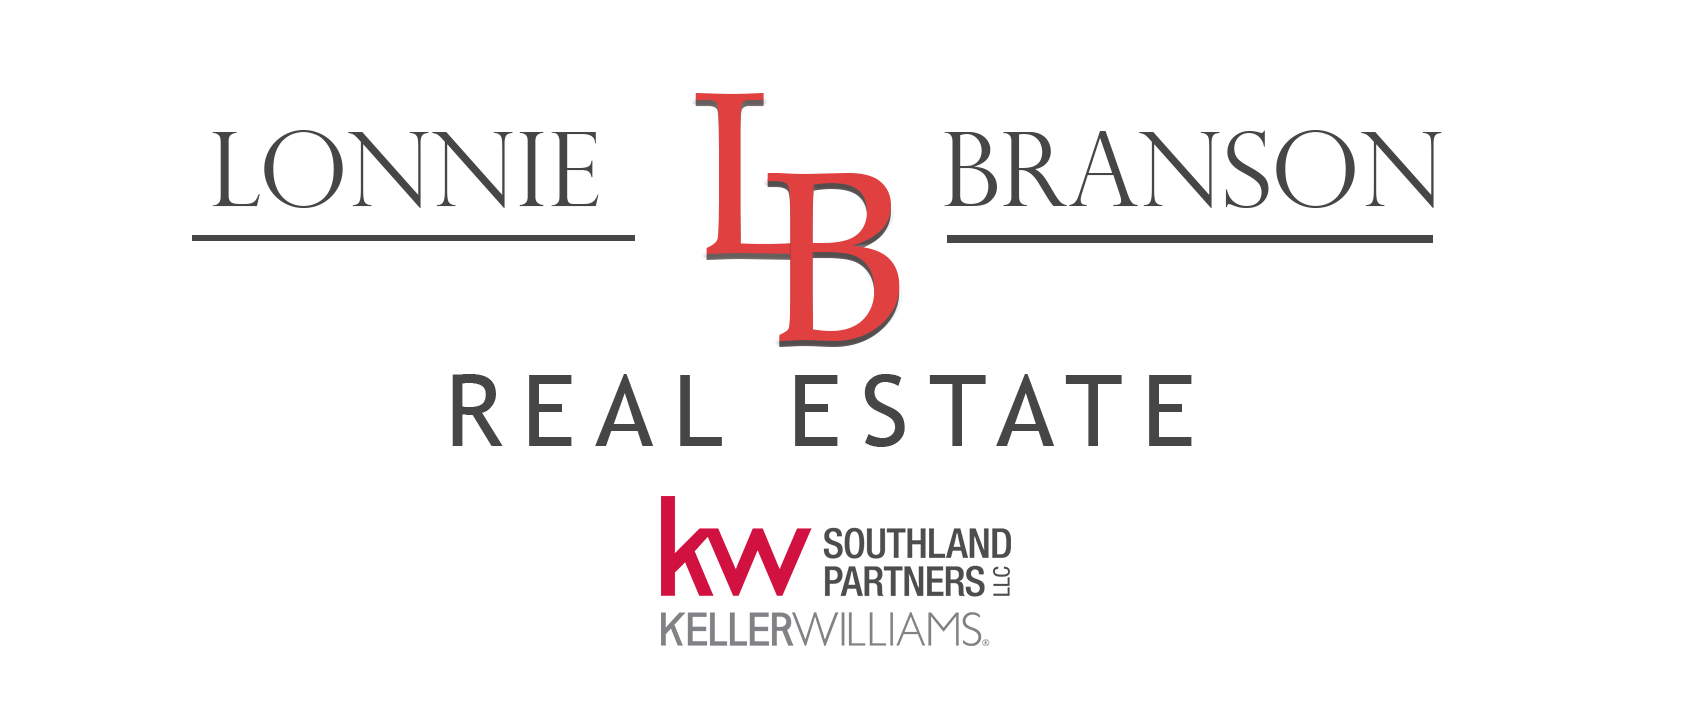 Lonnie Branson Real Estate